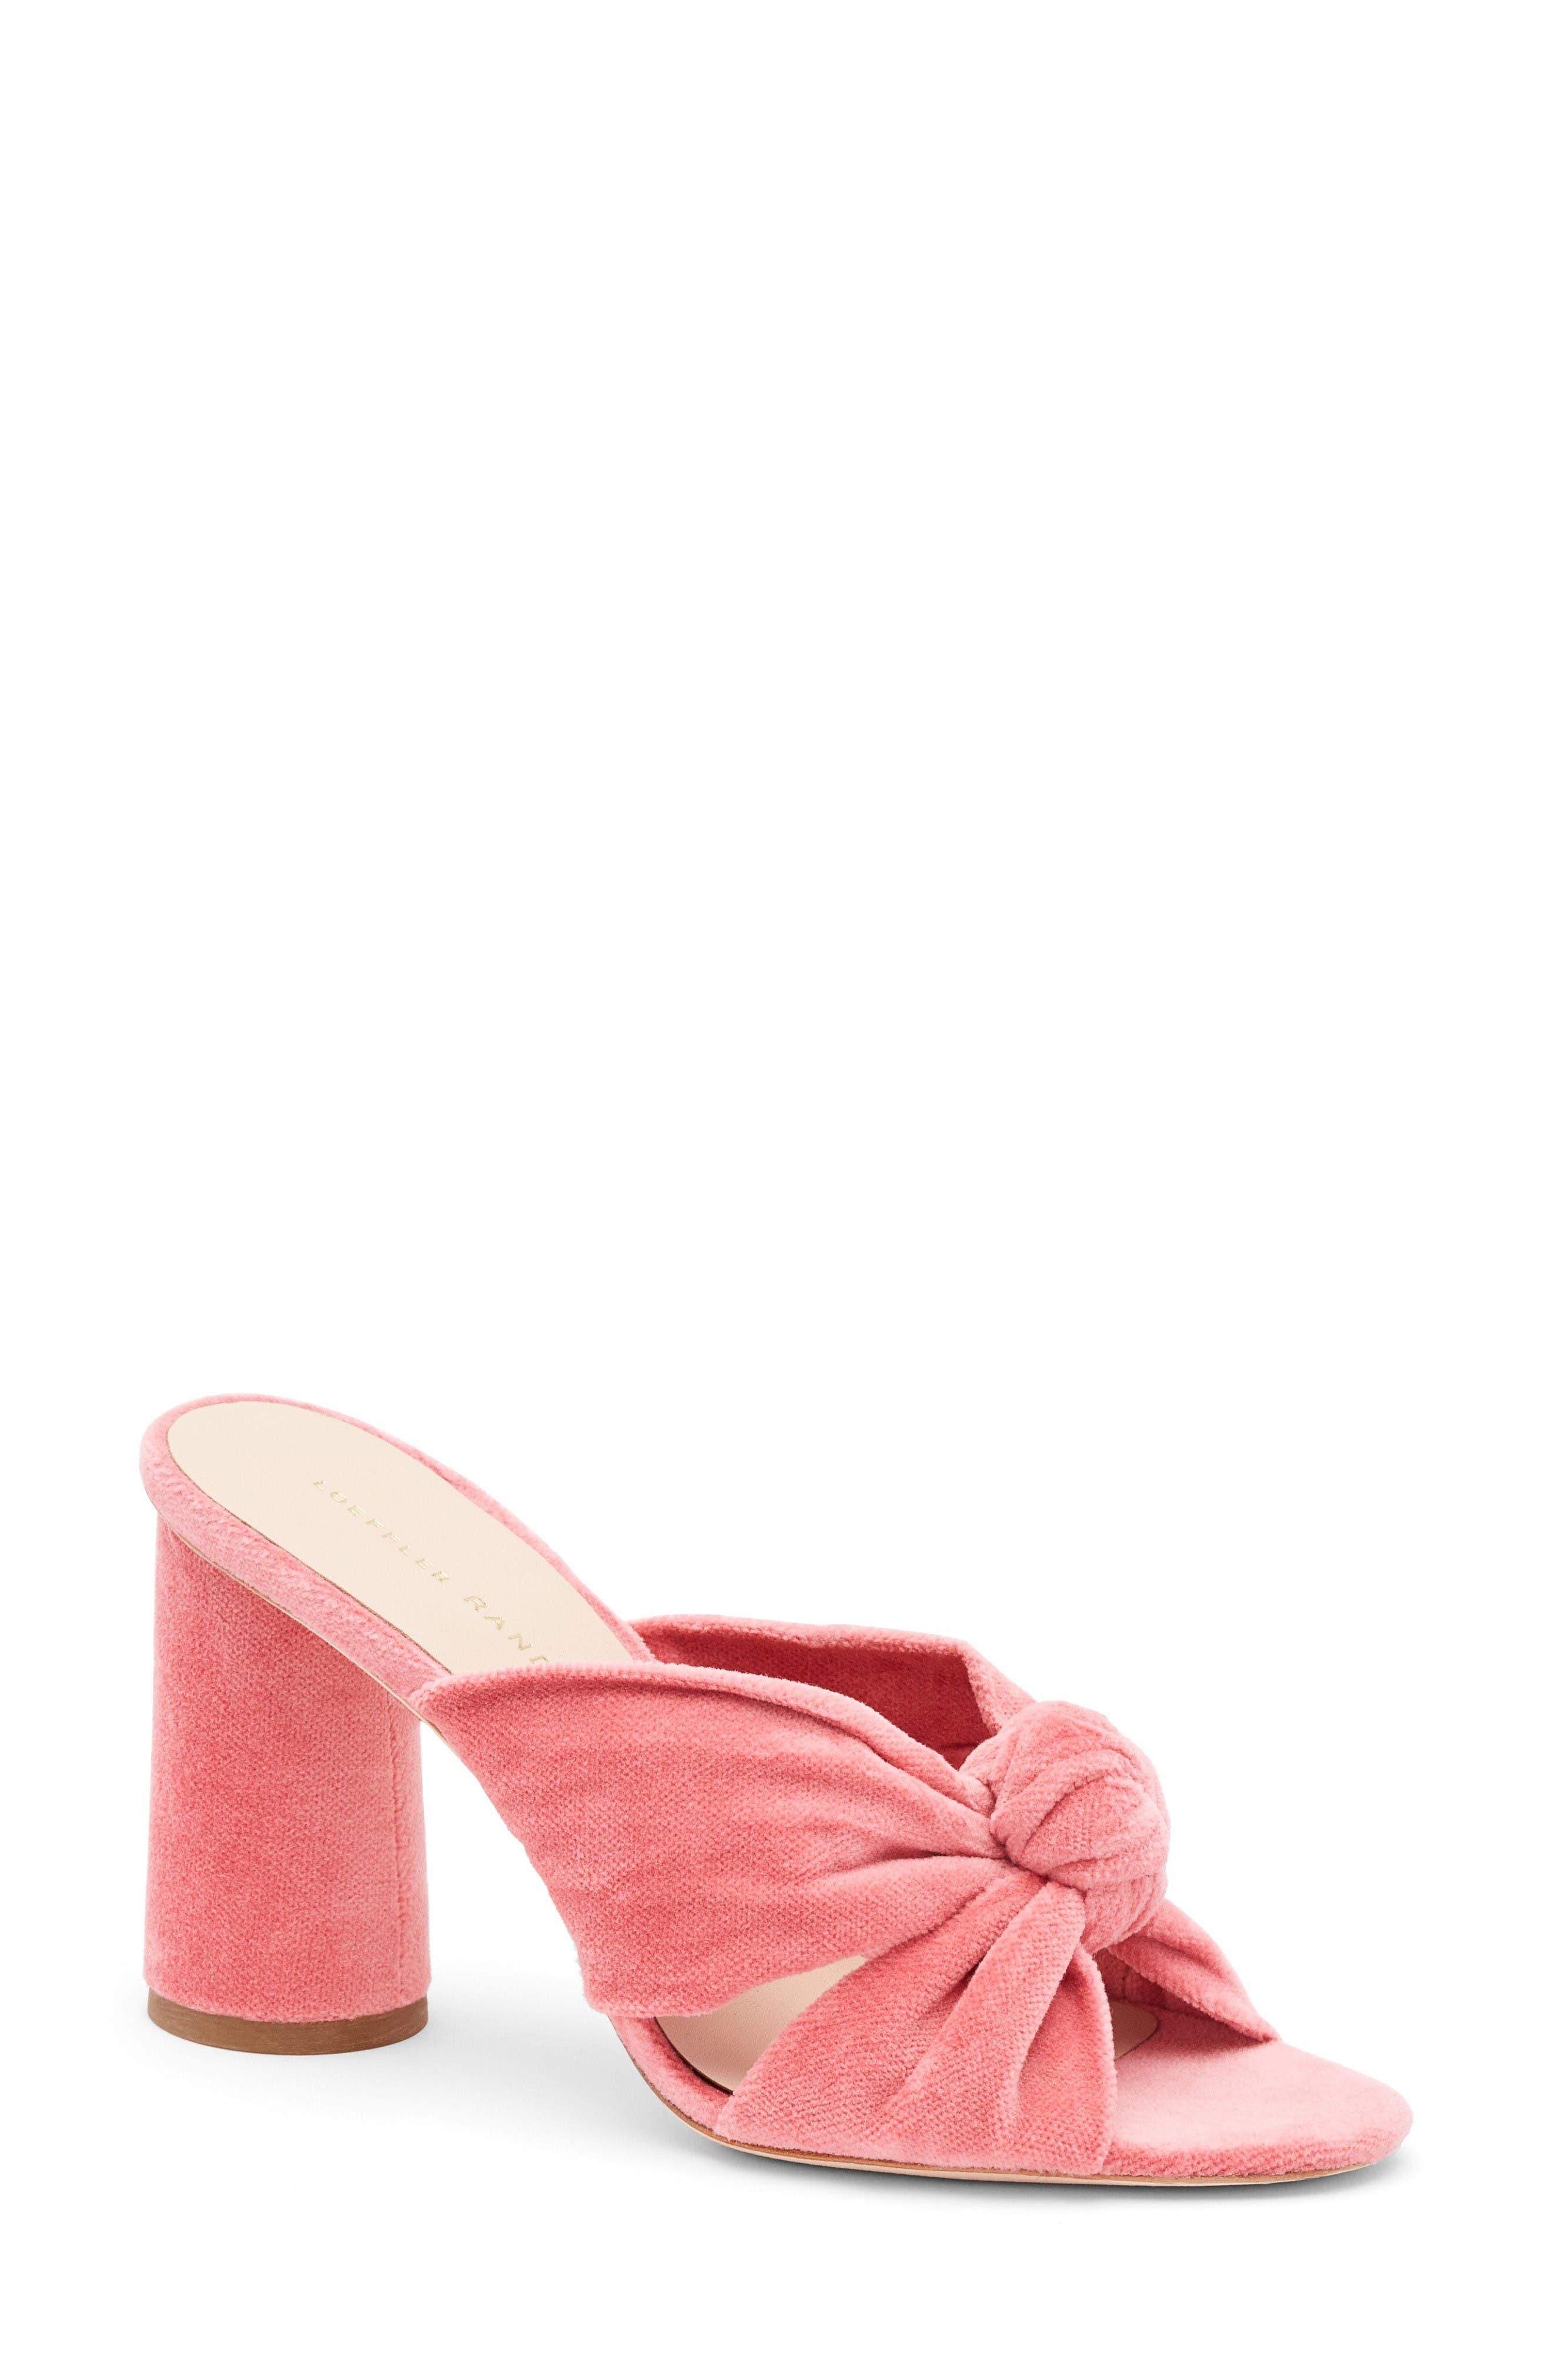 Alternate Image 1 Selected - Loeffler Randall Coco Sandal (Women)